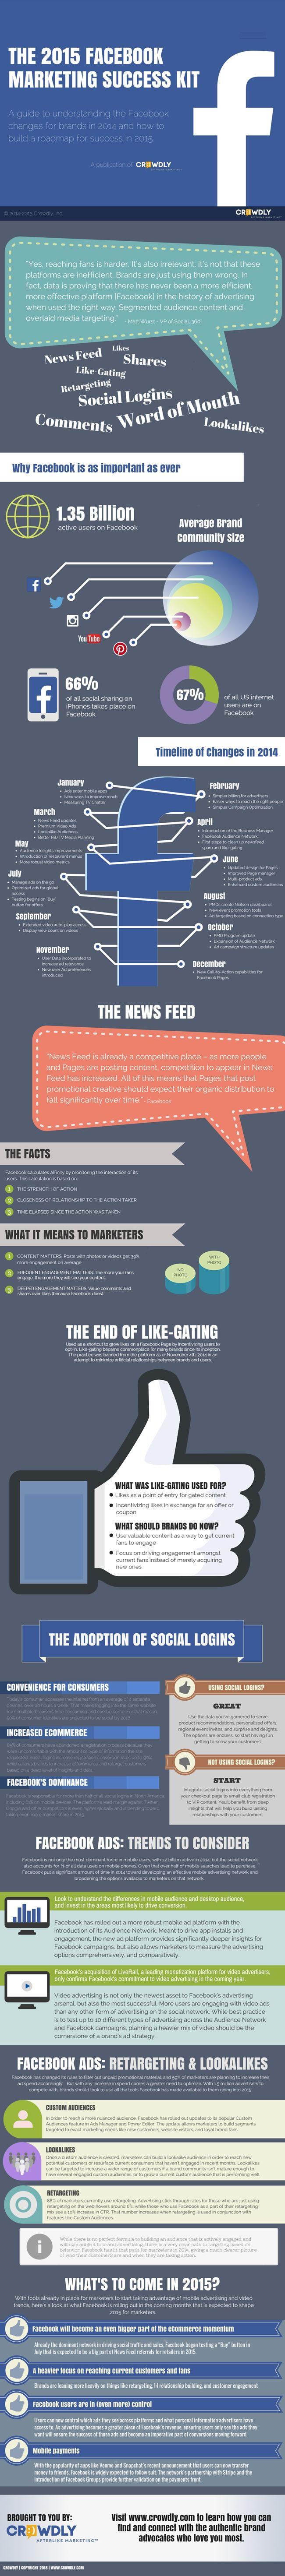 Crowdly 2015 #Facebook Marketing Kit #Infographic #socialmedia  www.november.media